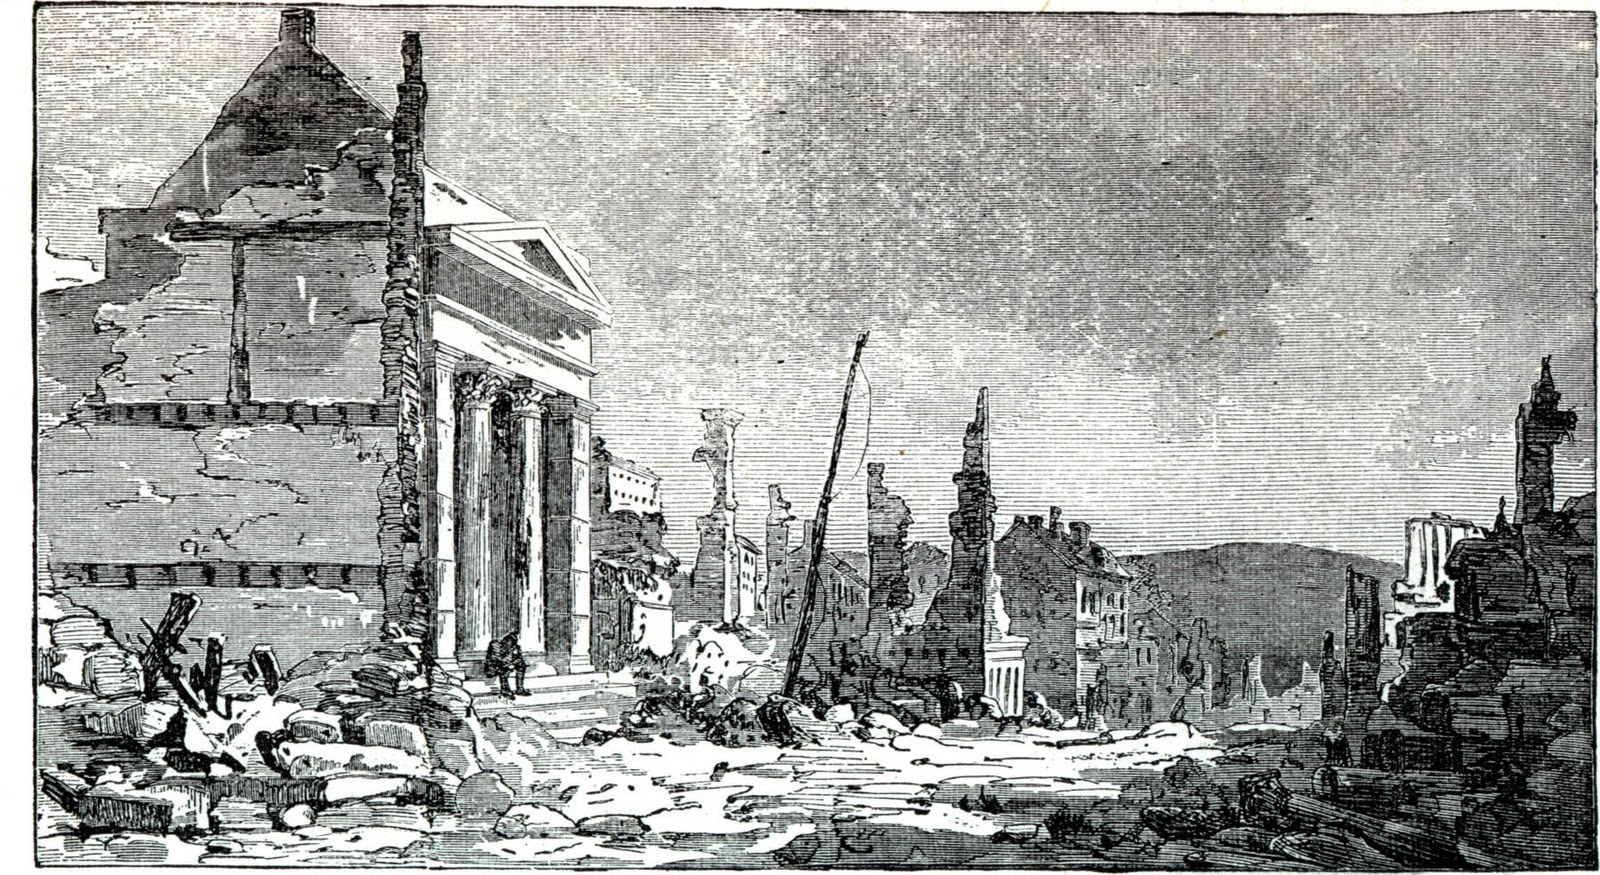 South Reconstruction After Civil War